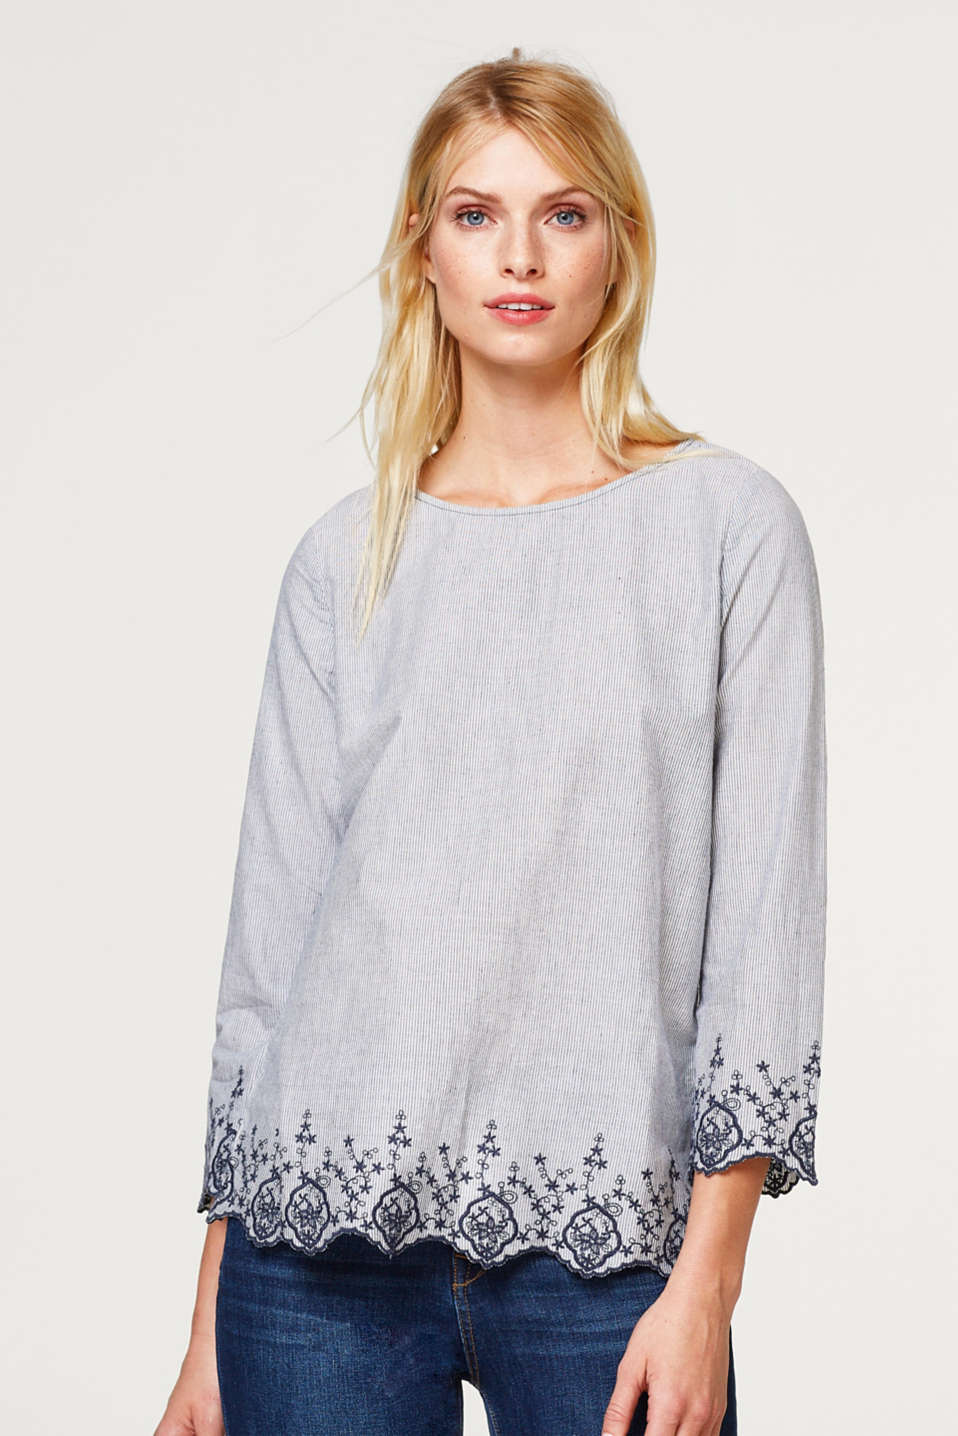 Esprit - Striped blouse with a scalloped hem and embroidery